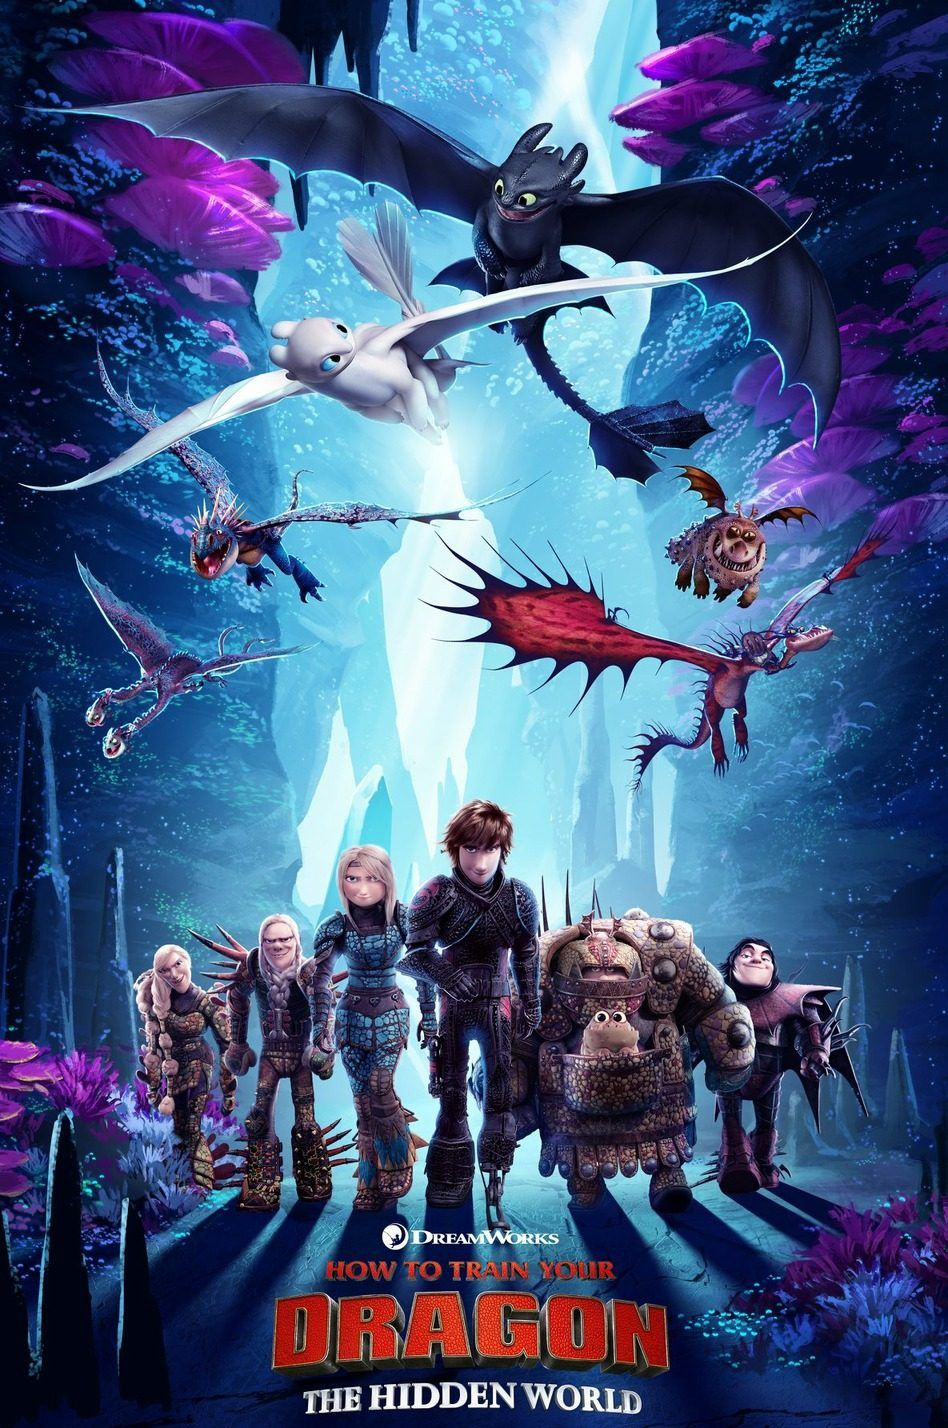 Pin By Seda Dal On How To Train Your Dragon Posters How Train Your Dragon How To Train Dragon How To Train Your Dragon